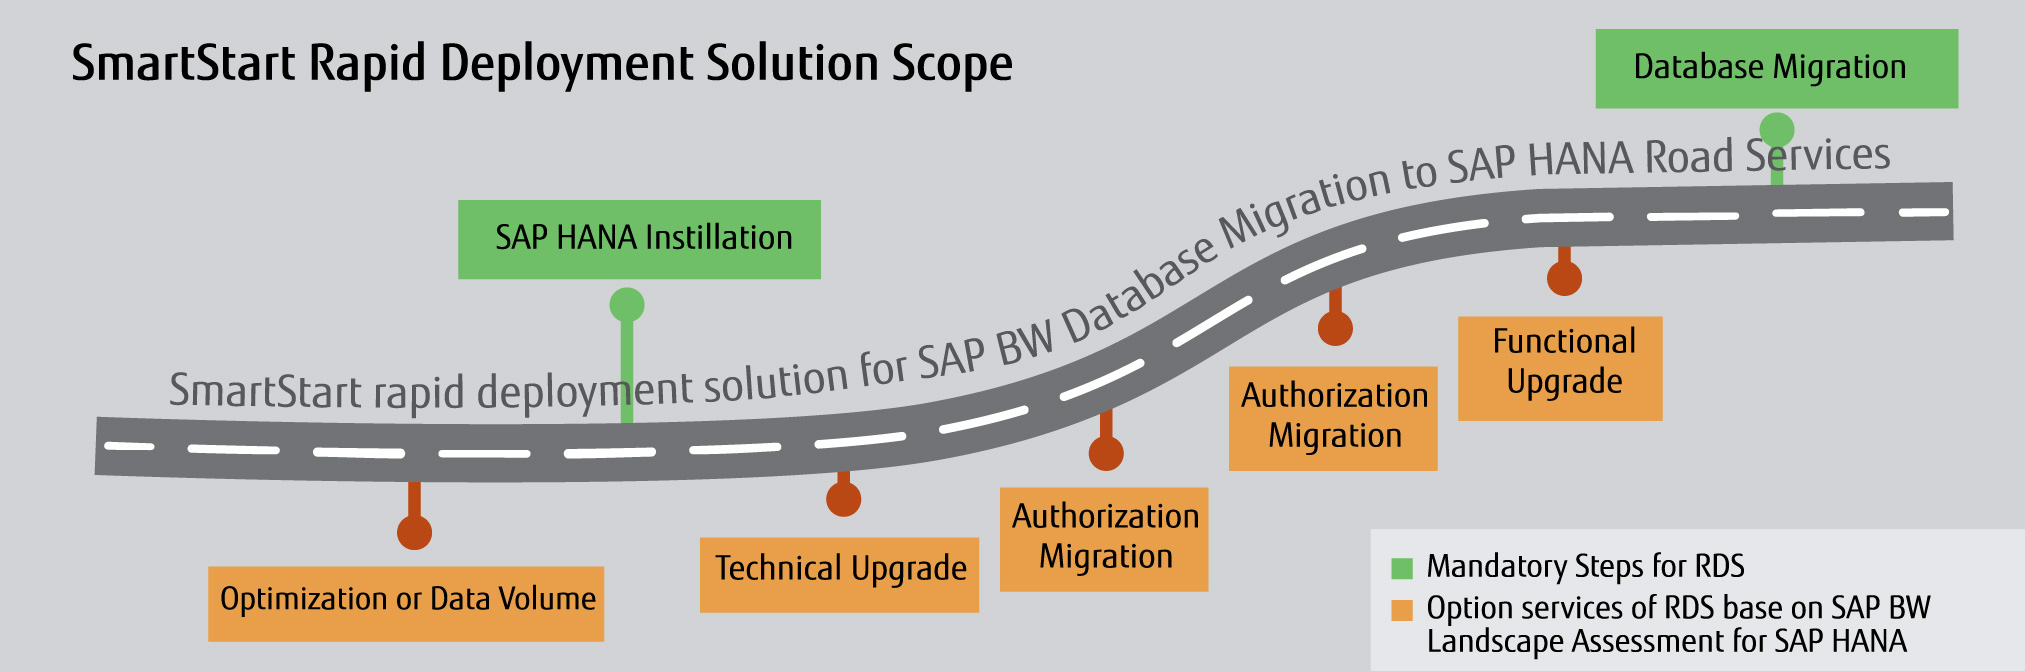 Rapid Deployment Solution Scope Roadmap